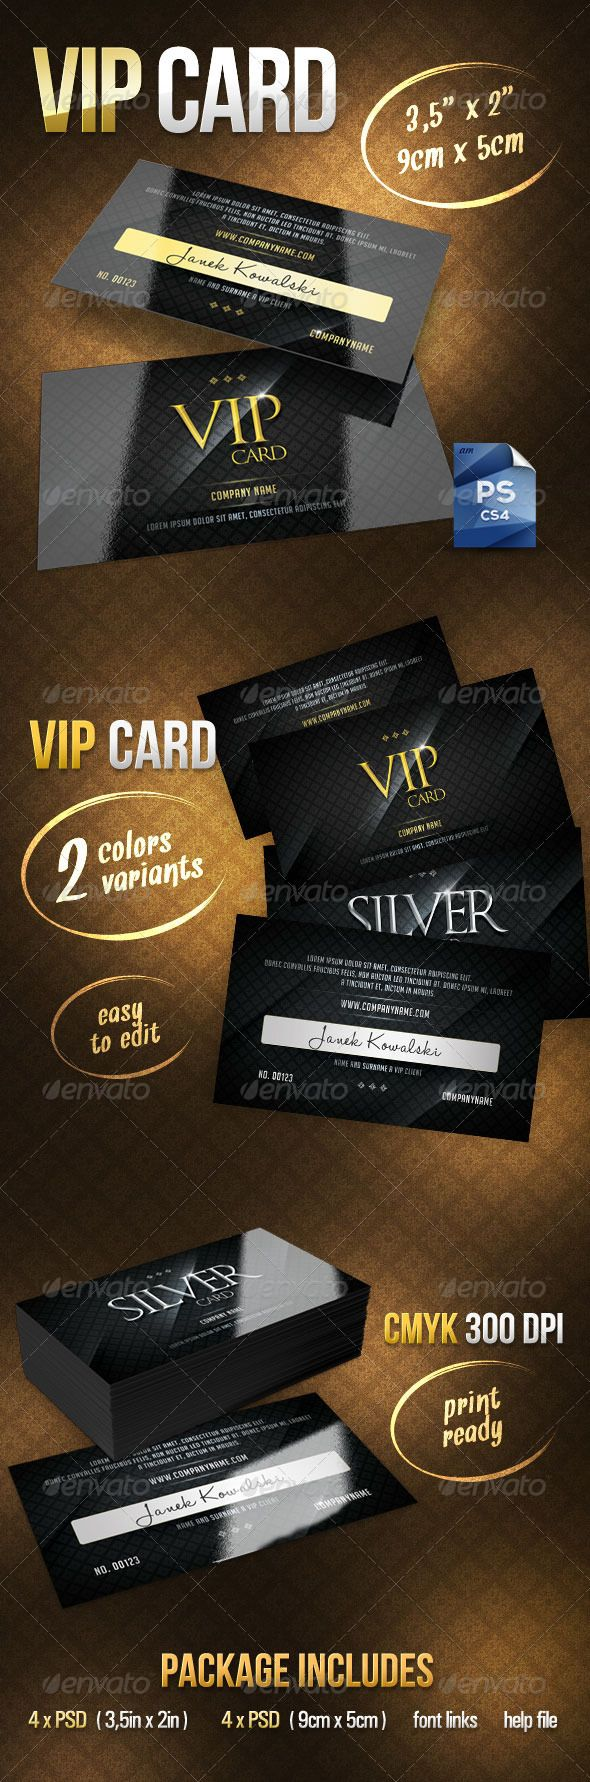 12 best vip images on pinterest vip card carte de visite and vip card loyalty cards cards invites reheart Choice Image